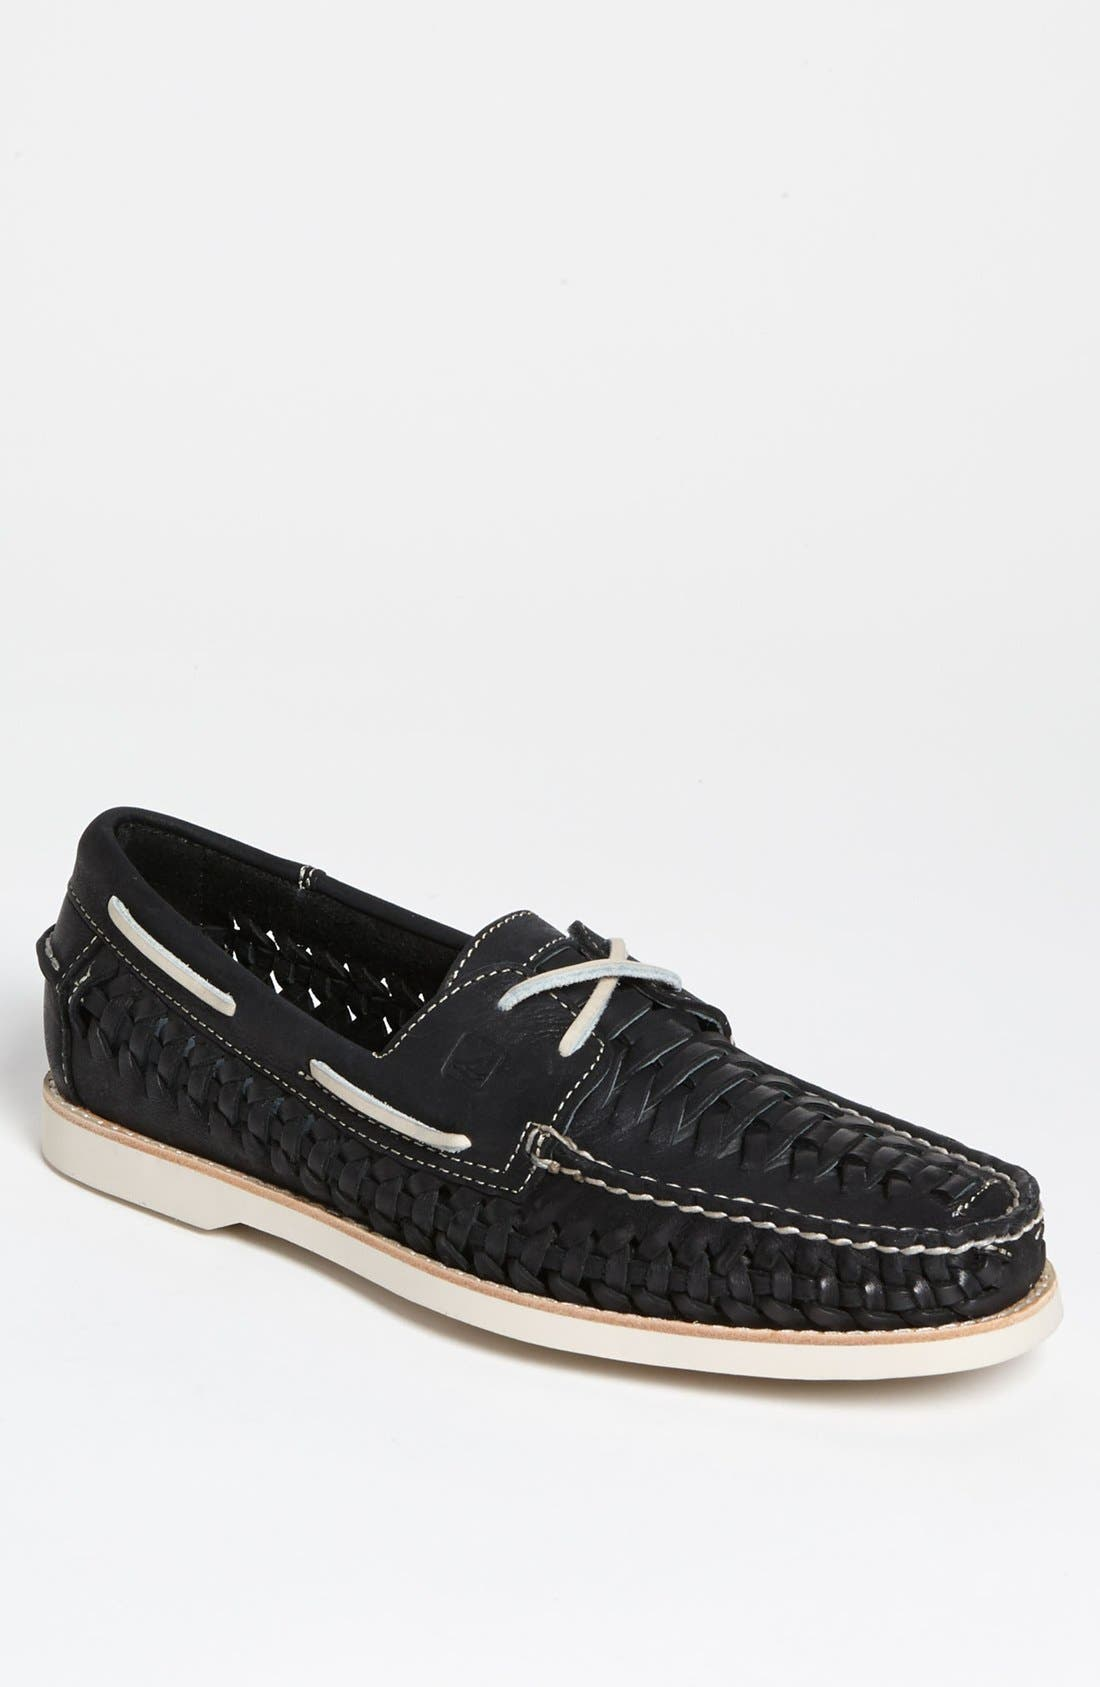 SPERRY Top-Sider<sup>®</sup> 'Seaside' Woven Boat Shoe, Main, color, 001